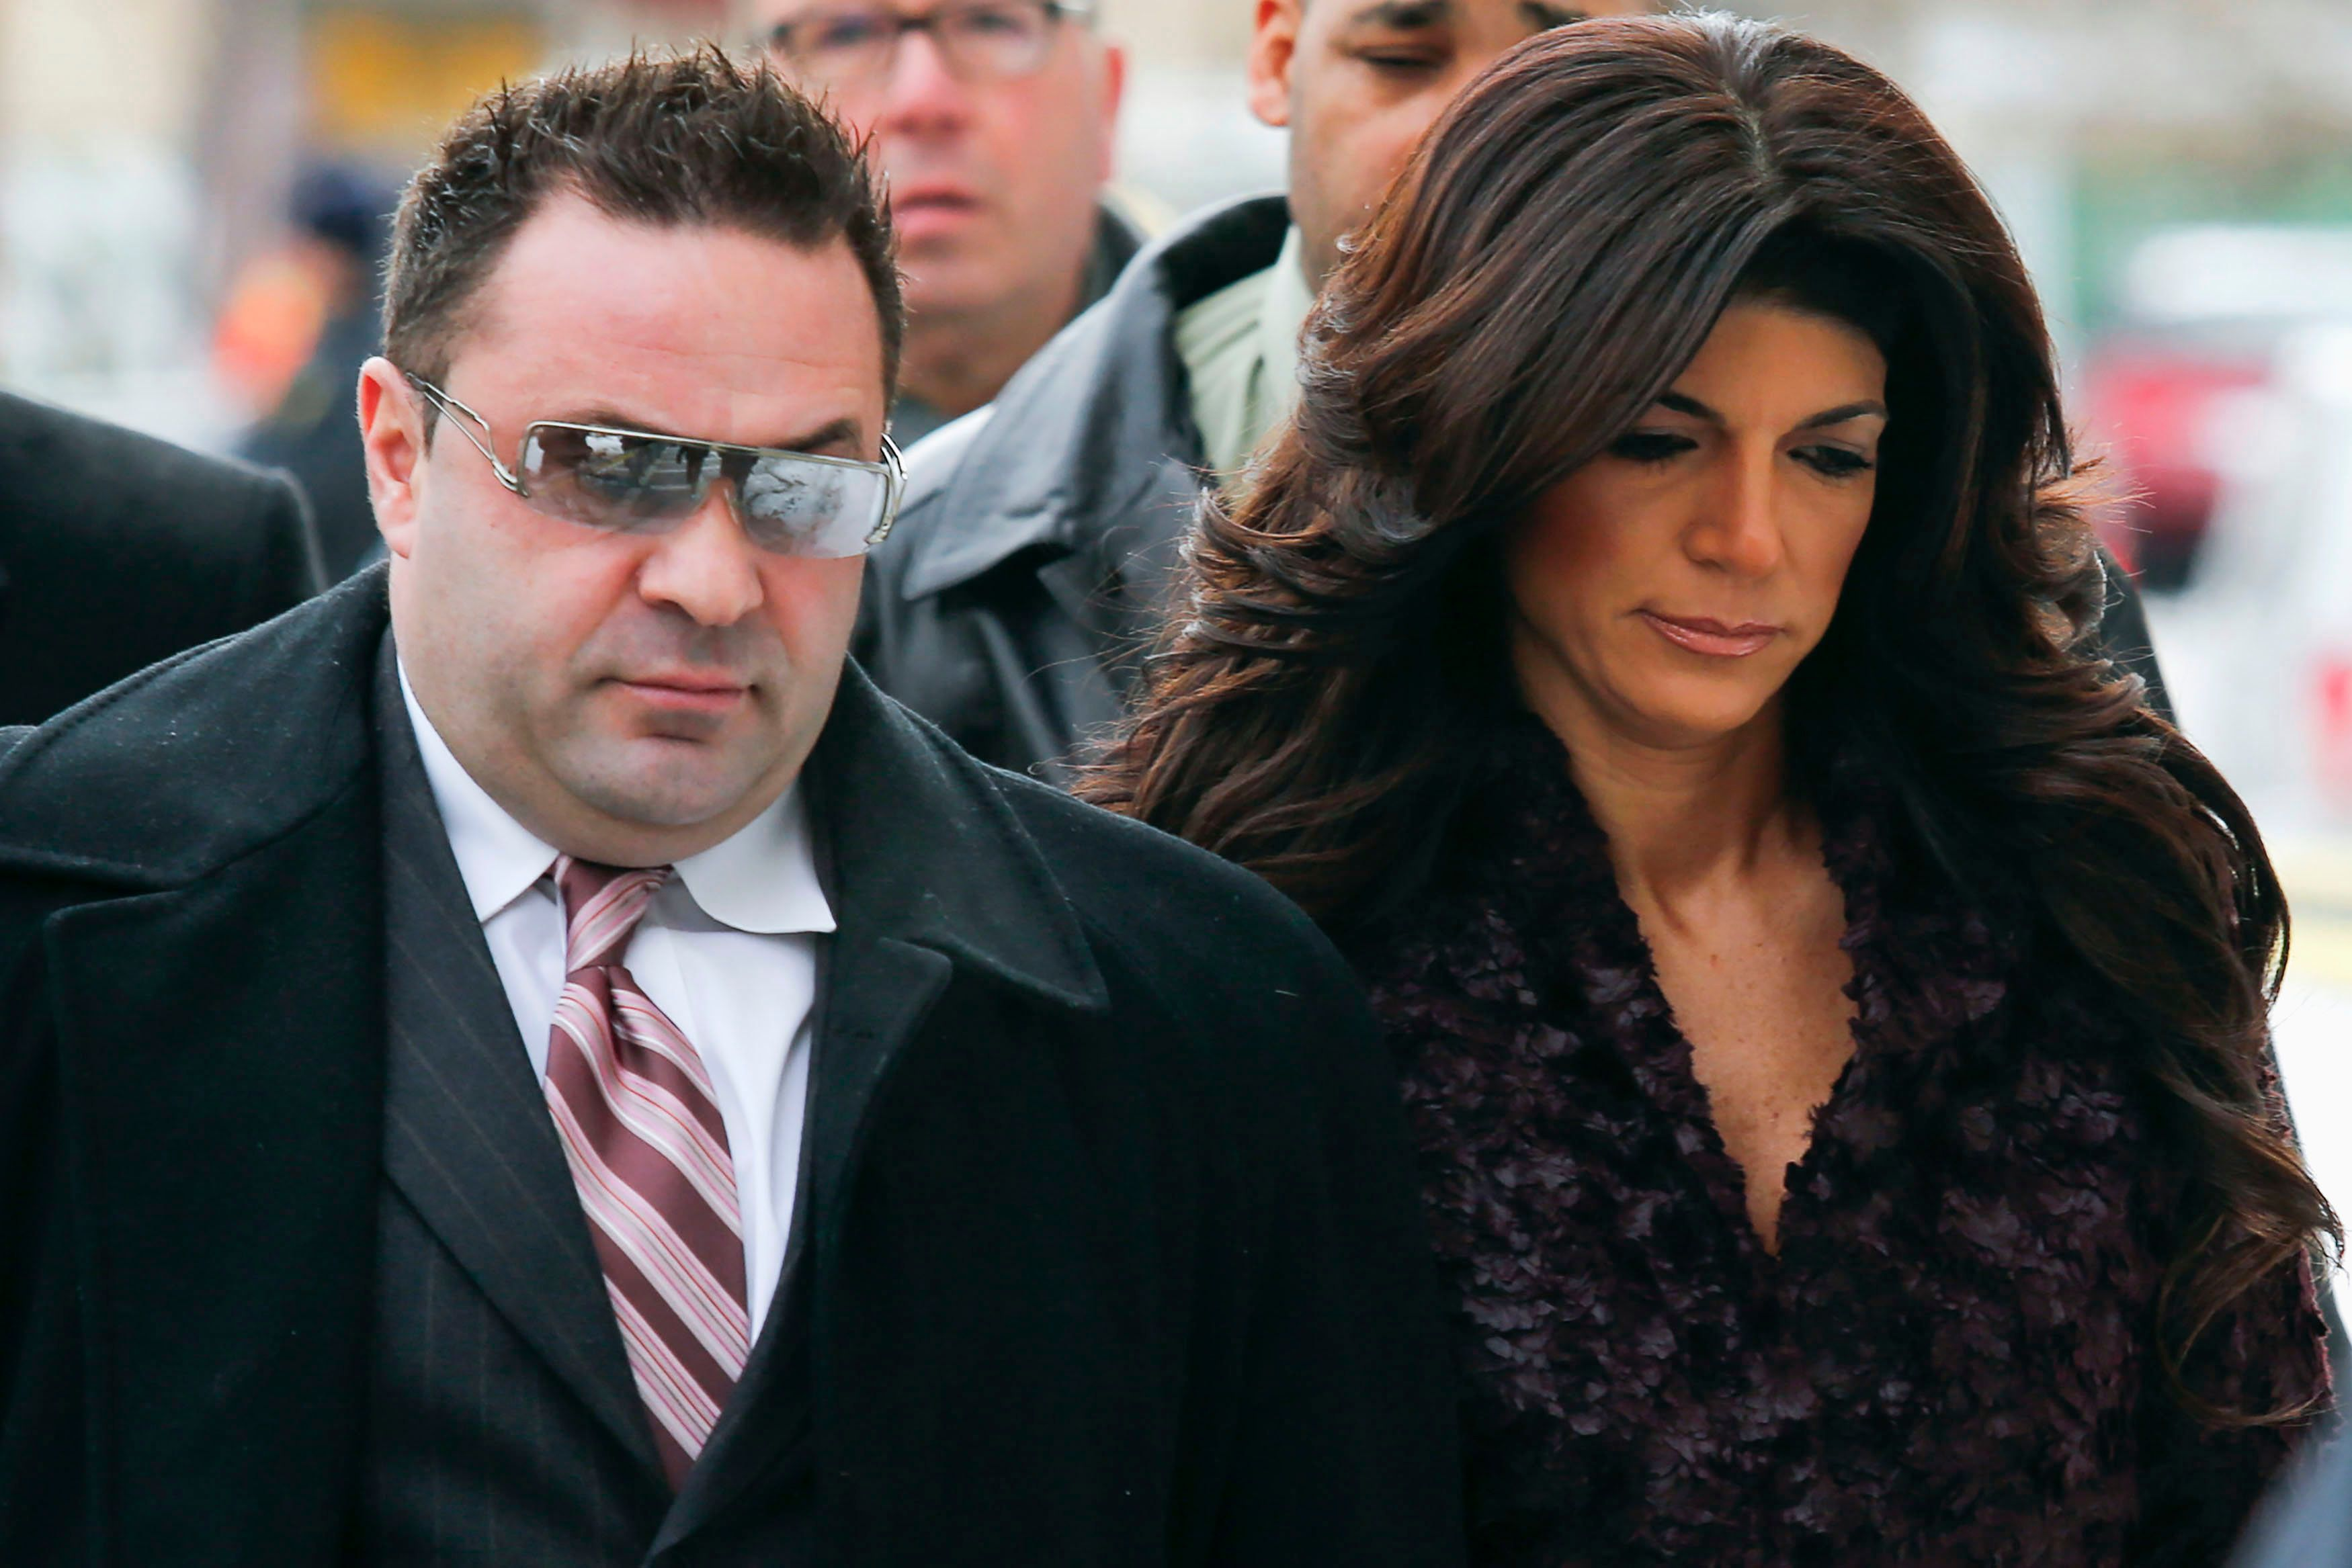 "Teresa Giudice, 41, (R) and her husband Giuseppe ""Joe"" Giudice, 43, (L) arrive at the Federal Court in Newark, New Jersey, March 4, 2014. ""Real Housewives of New Jersey"" cast members Teresa and Giuseppe are expected to plead guilty to charges stemming from their loan fraud case in which prosecutors say they lied on financial applications and hid income. REUTERS/Eduardo Munoz (UNITED STATES - Tags: CRIME LAW ENTERTAINMENT)"